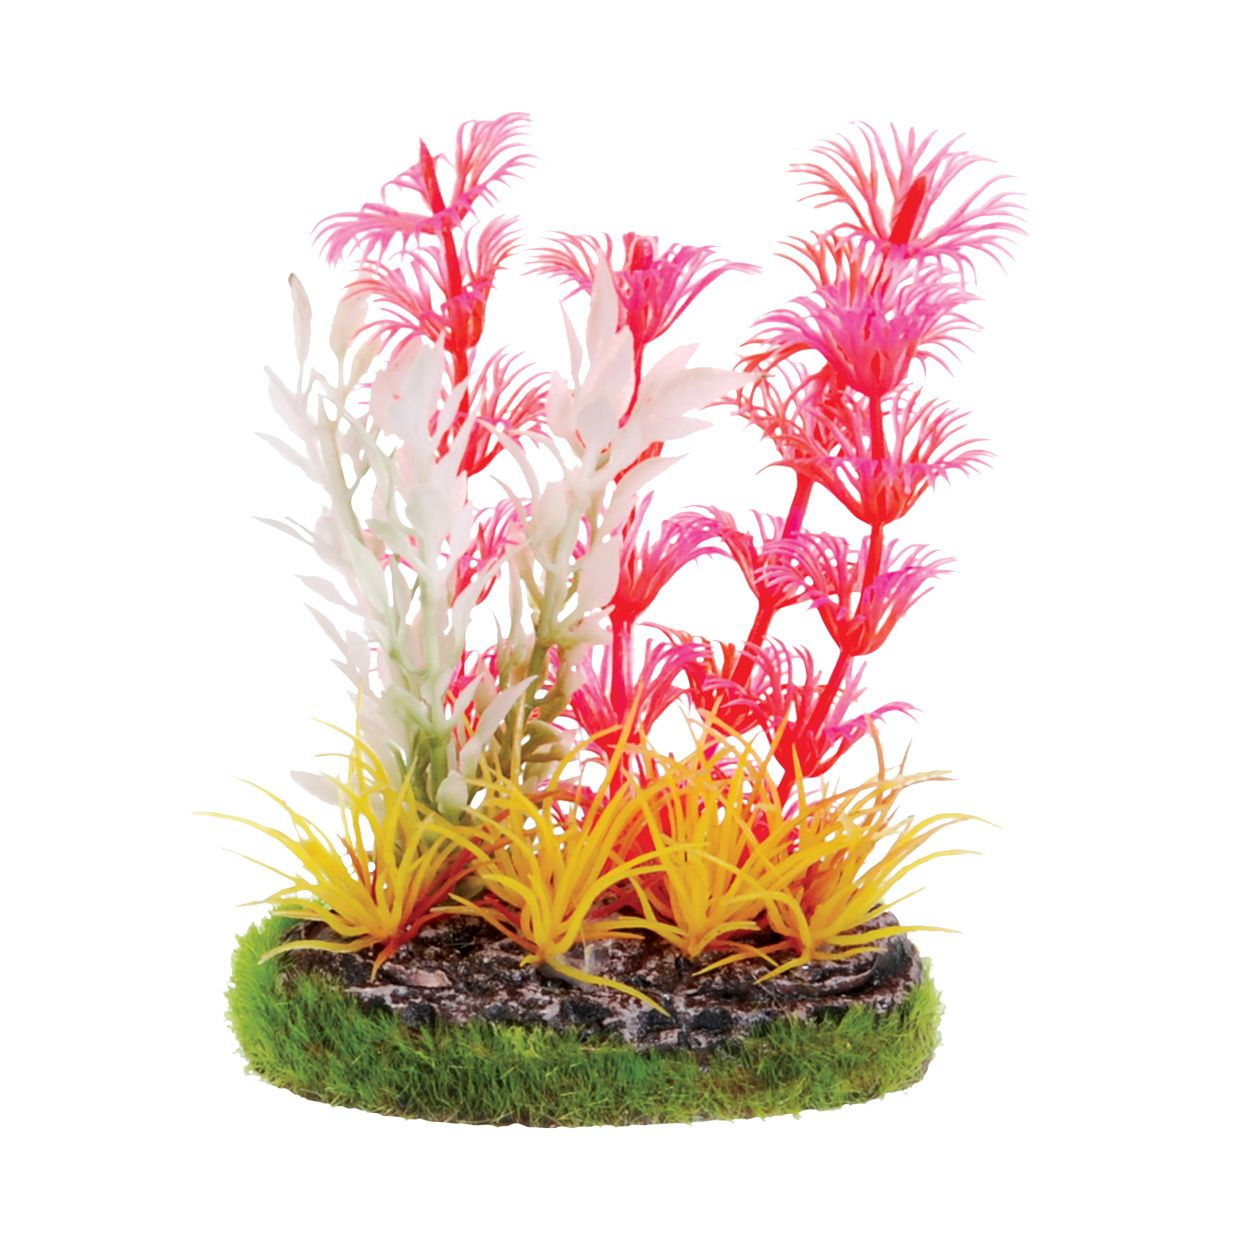 Underwater Treasures Pink Cabomba with Yellow Grass Scene - 3.25 inch